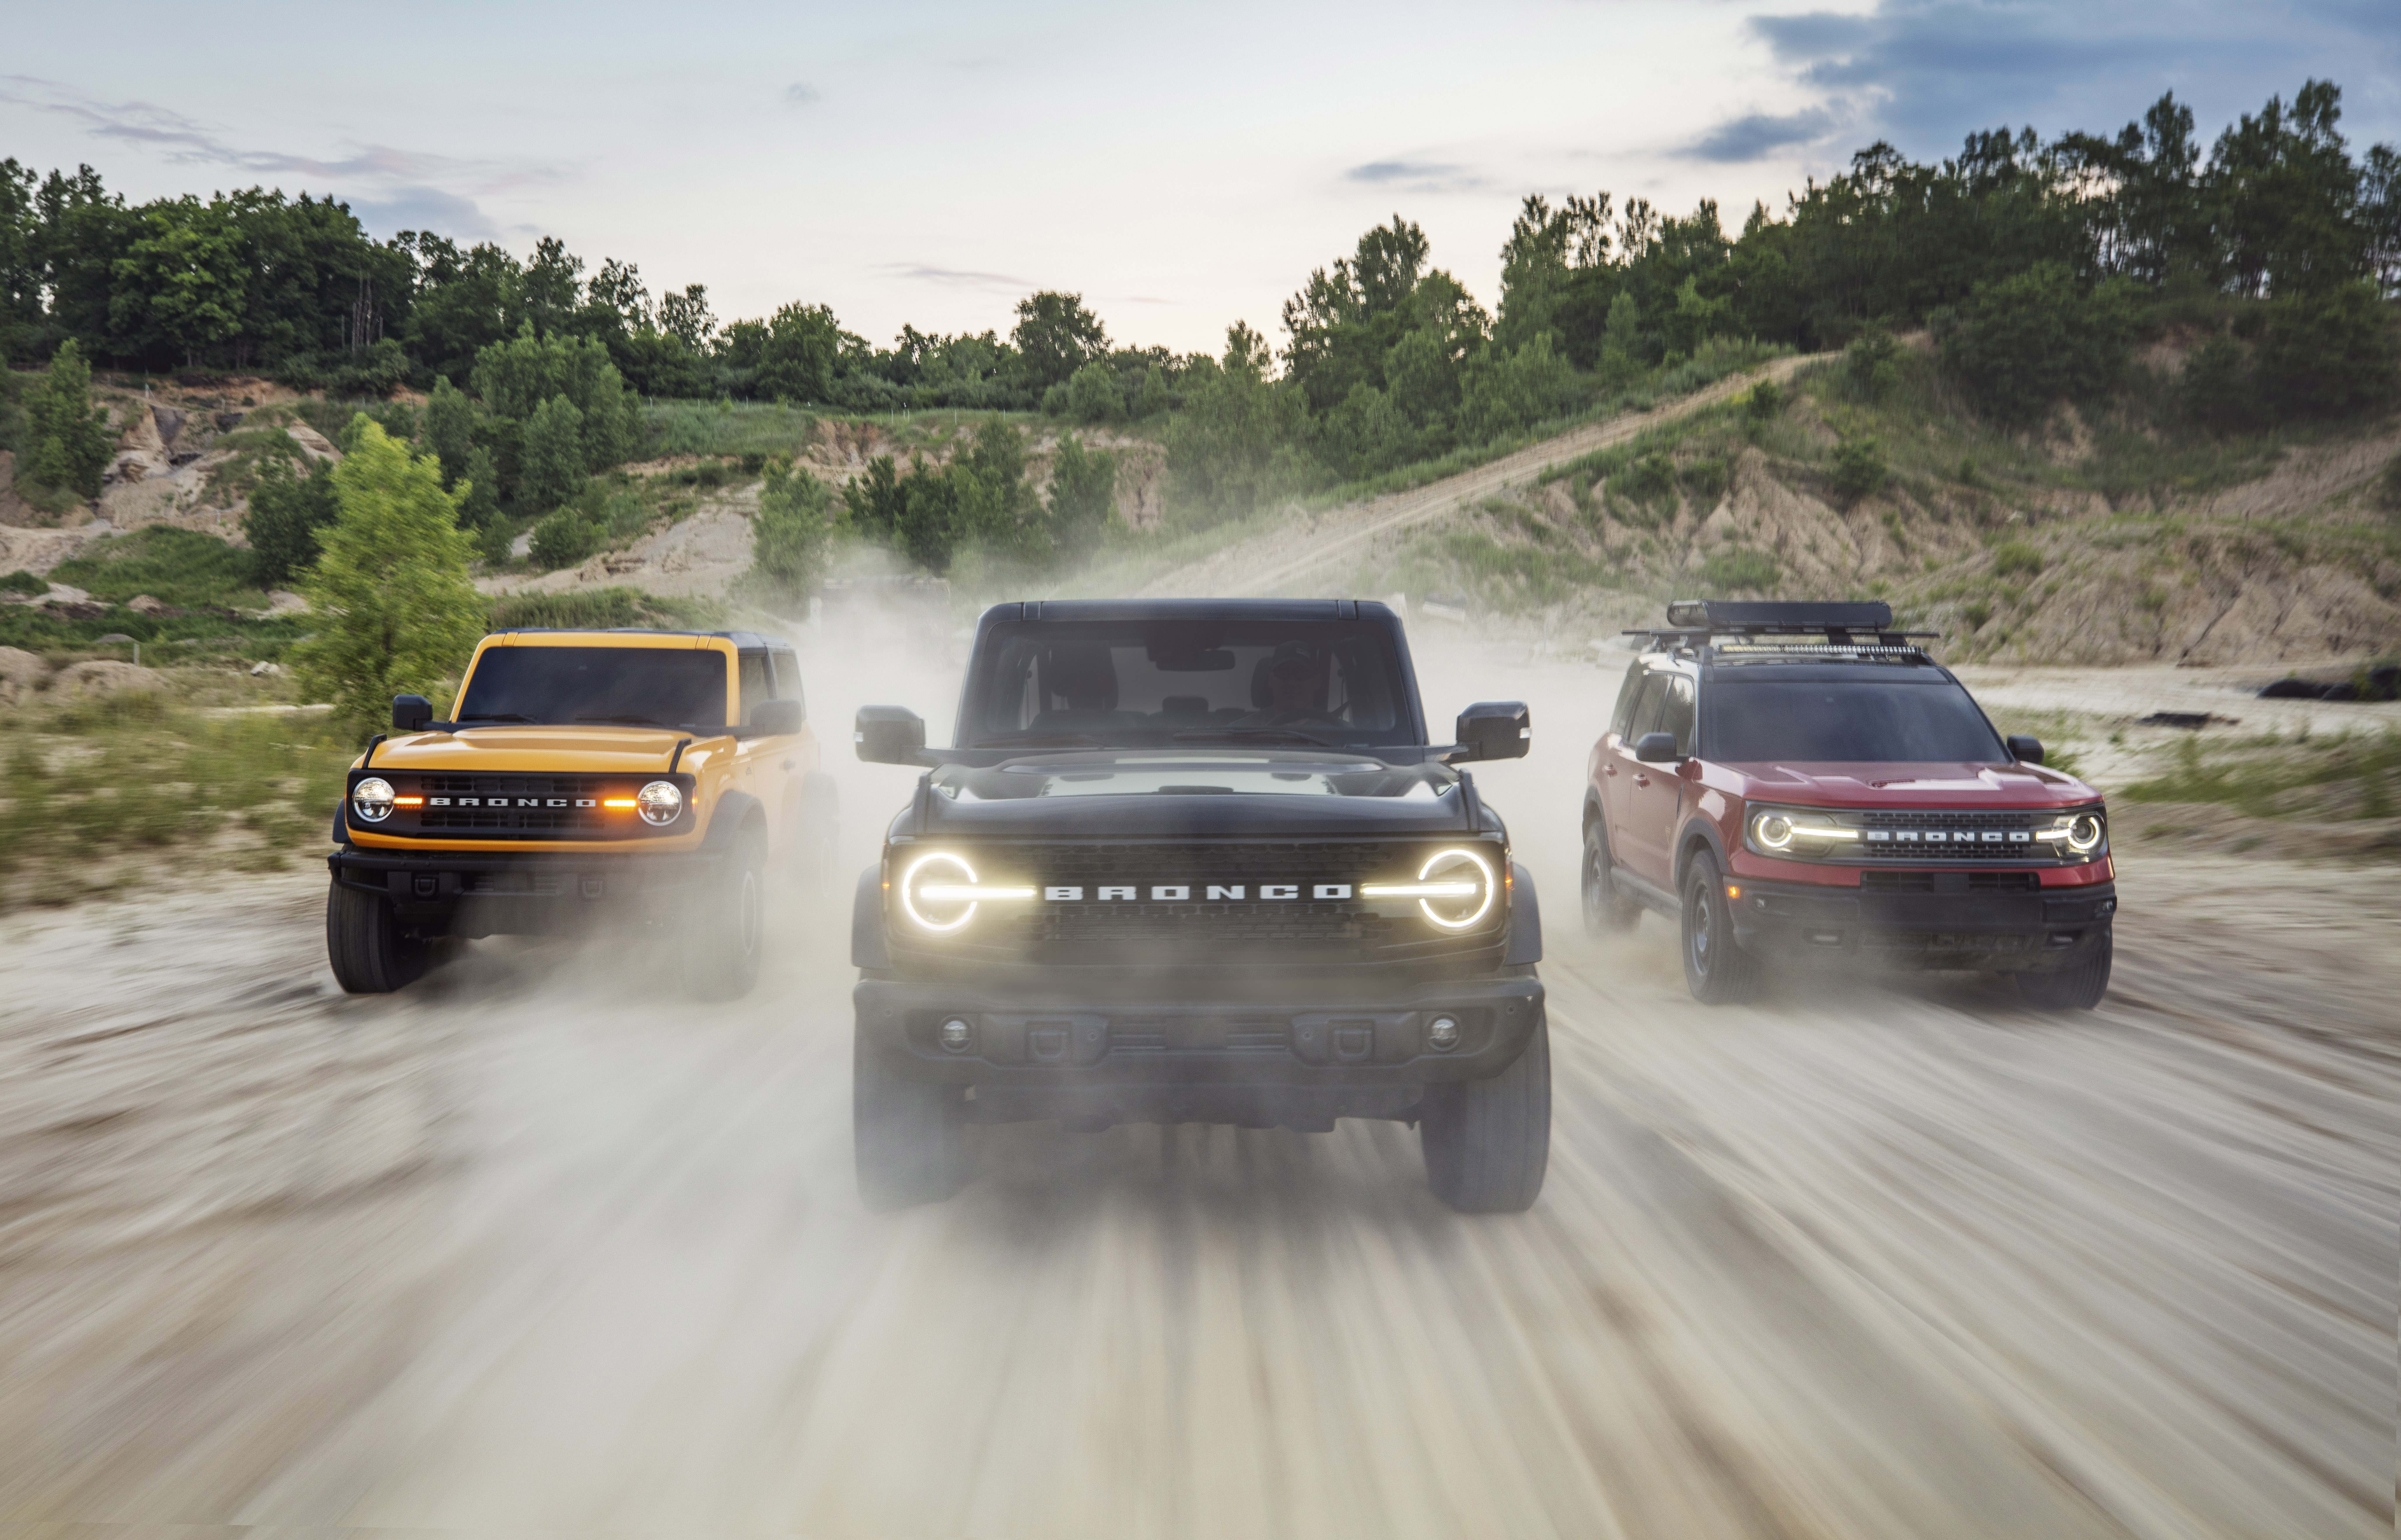 Here's a first look at the new Ford Bronco thumbnail